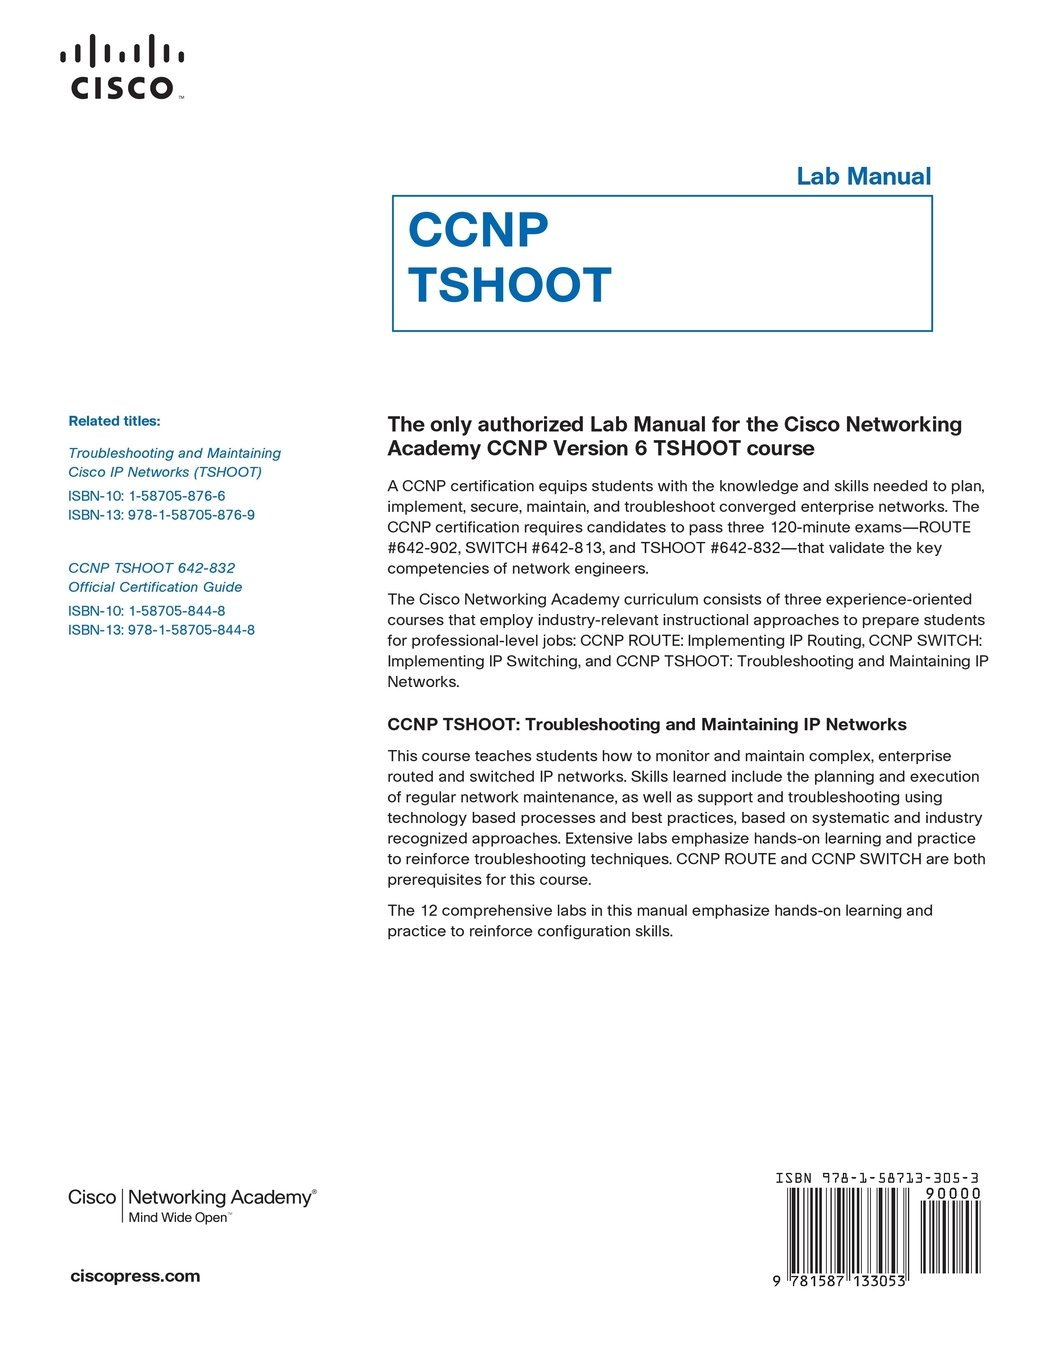 Apr 2012 the only authorized lab manual for the cisco networking academy  ccnp version tshoot course ccnp certification equips students with ...